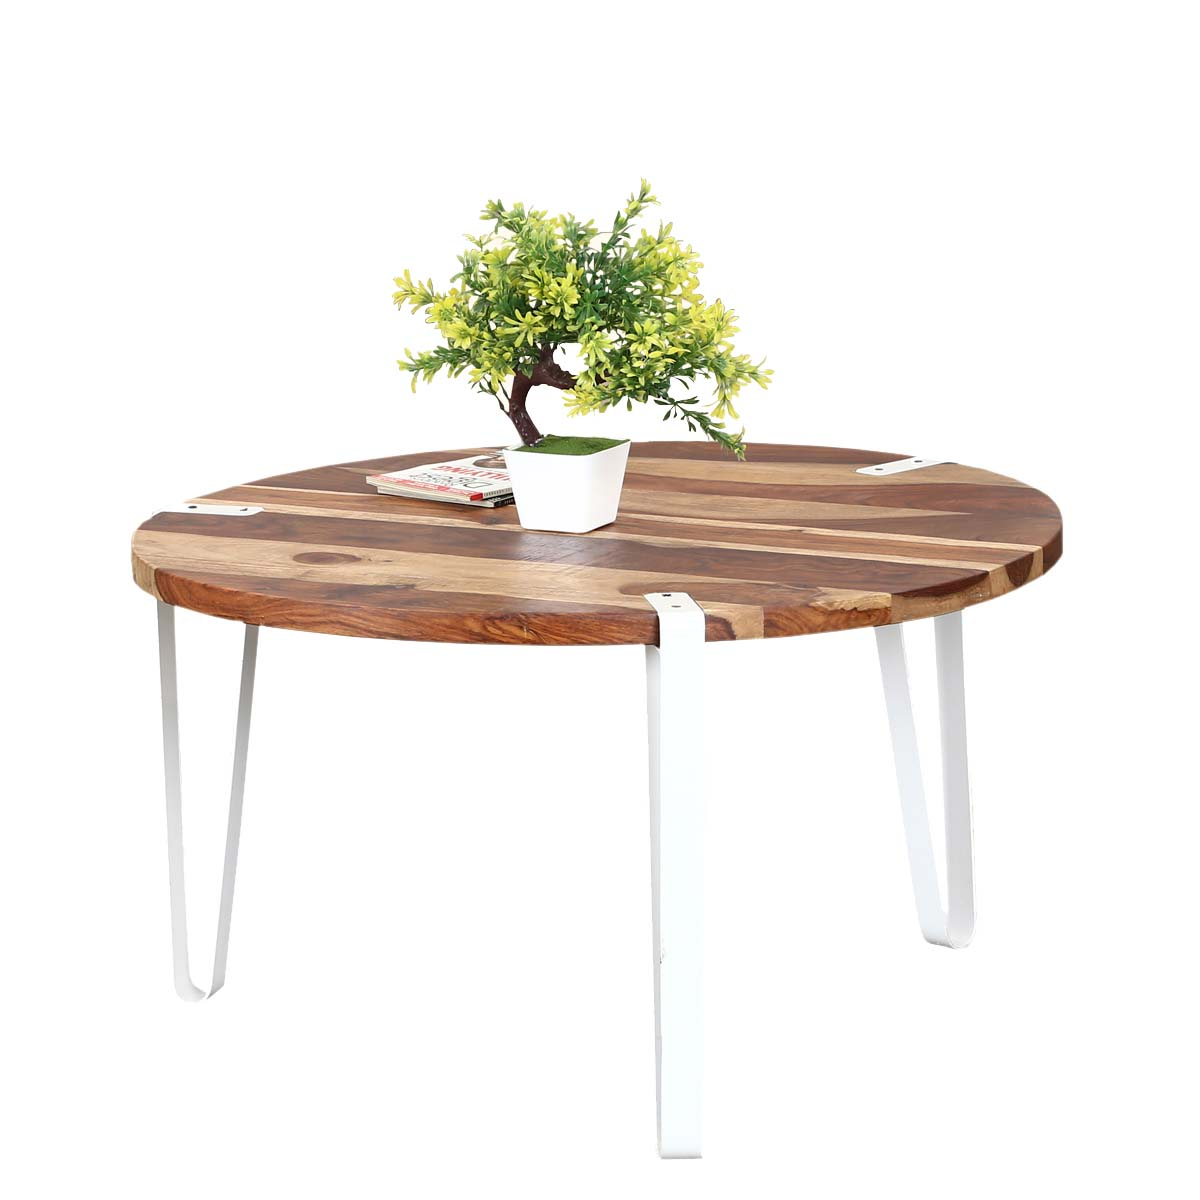 wrought iron large round coffee table with embosed steel modern zebra solid wood accent nate berkus marble trestle bench rustic storage tall mirrored cherry dinner metal legs